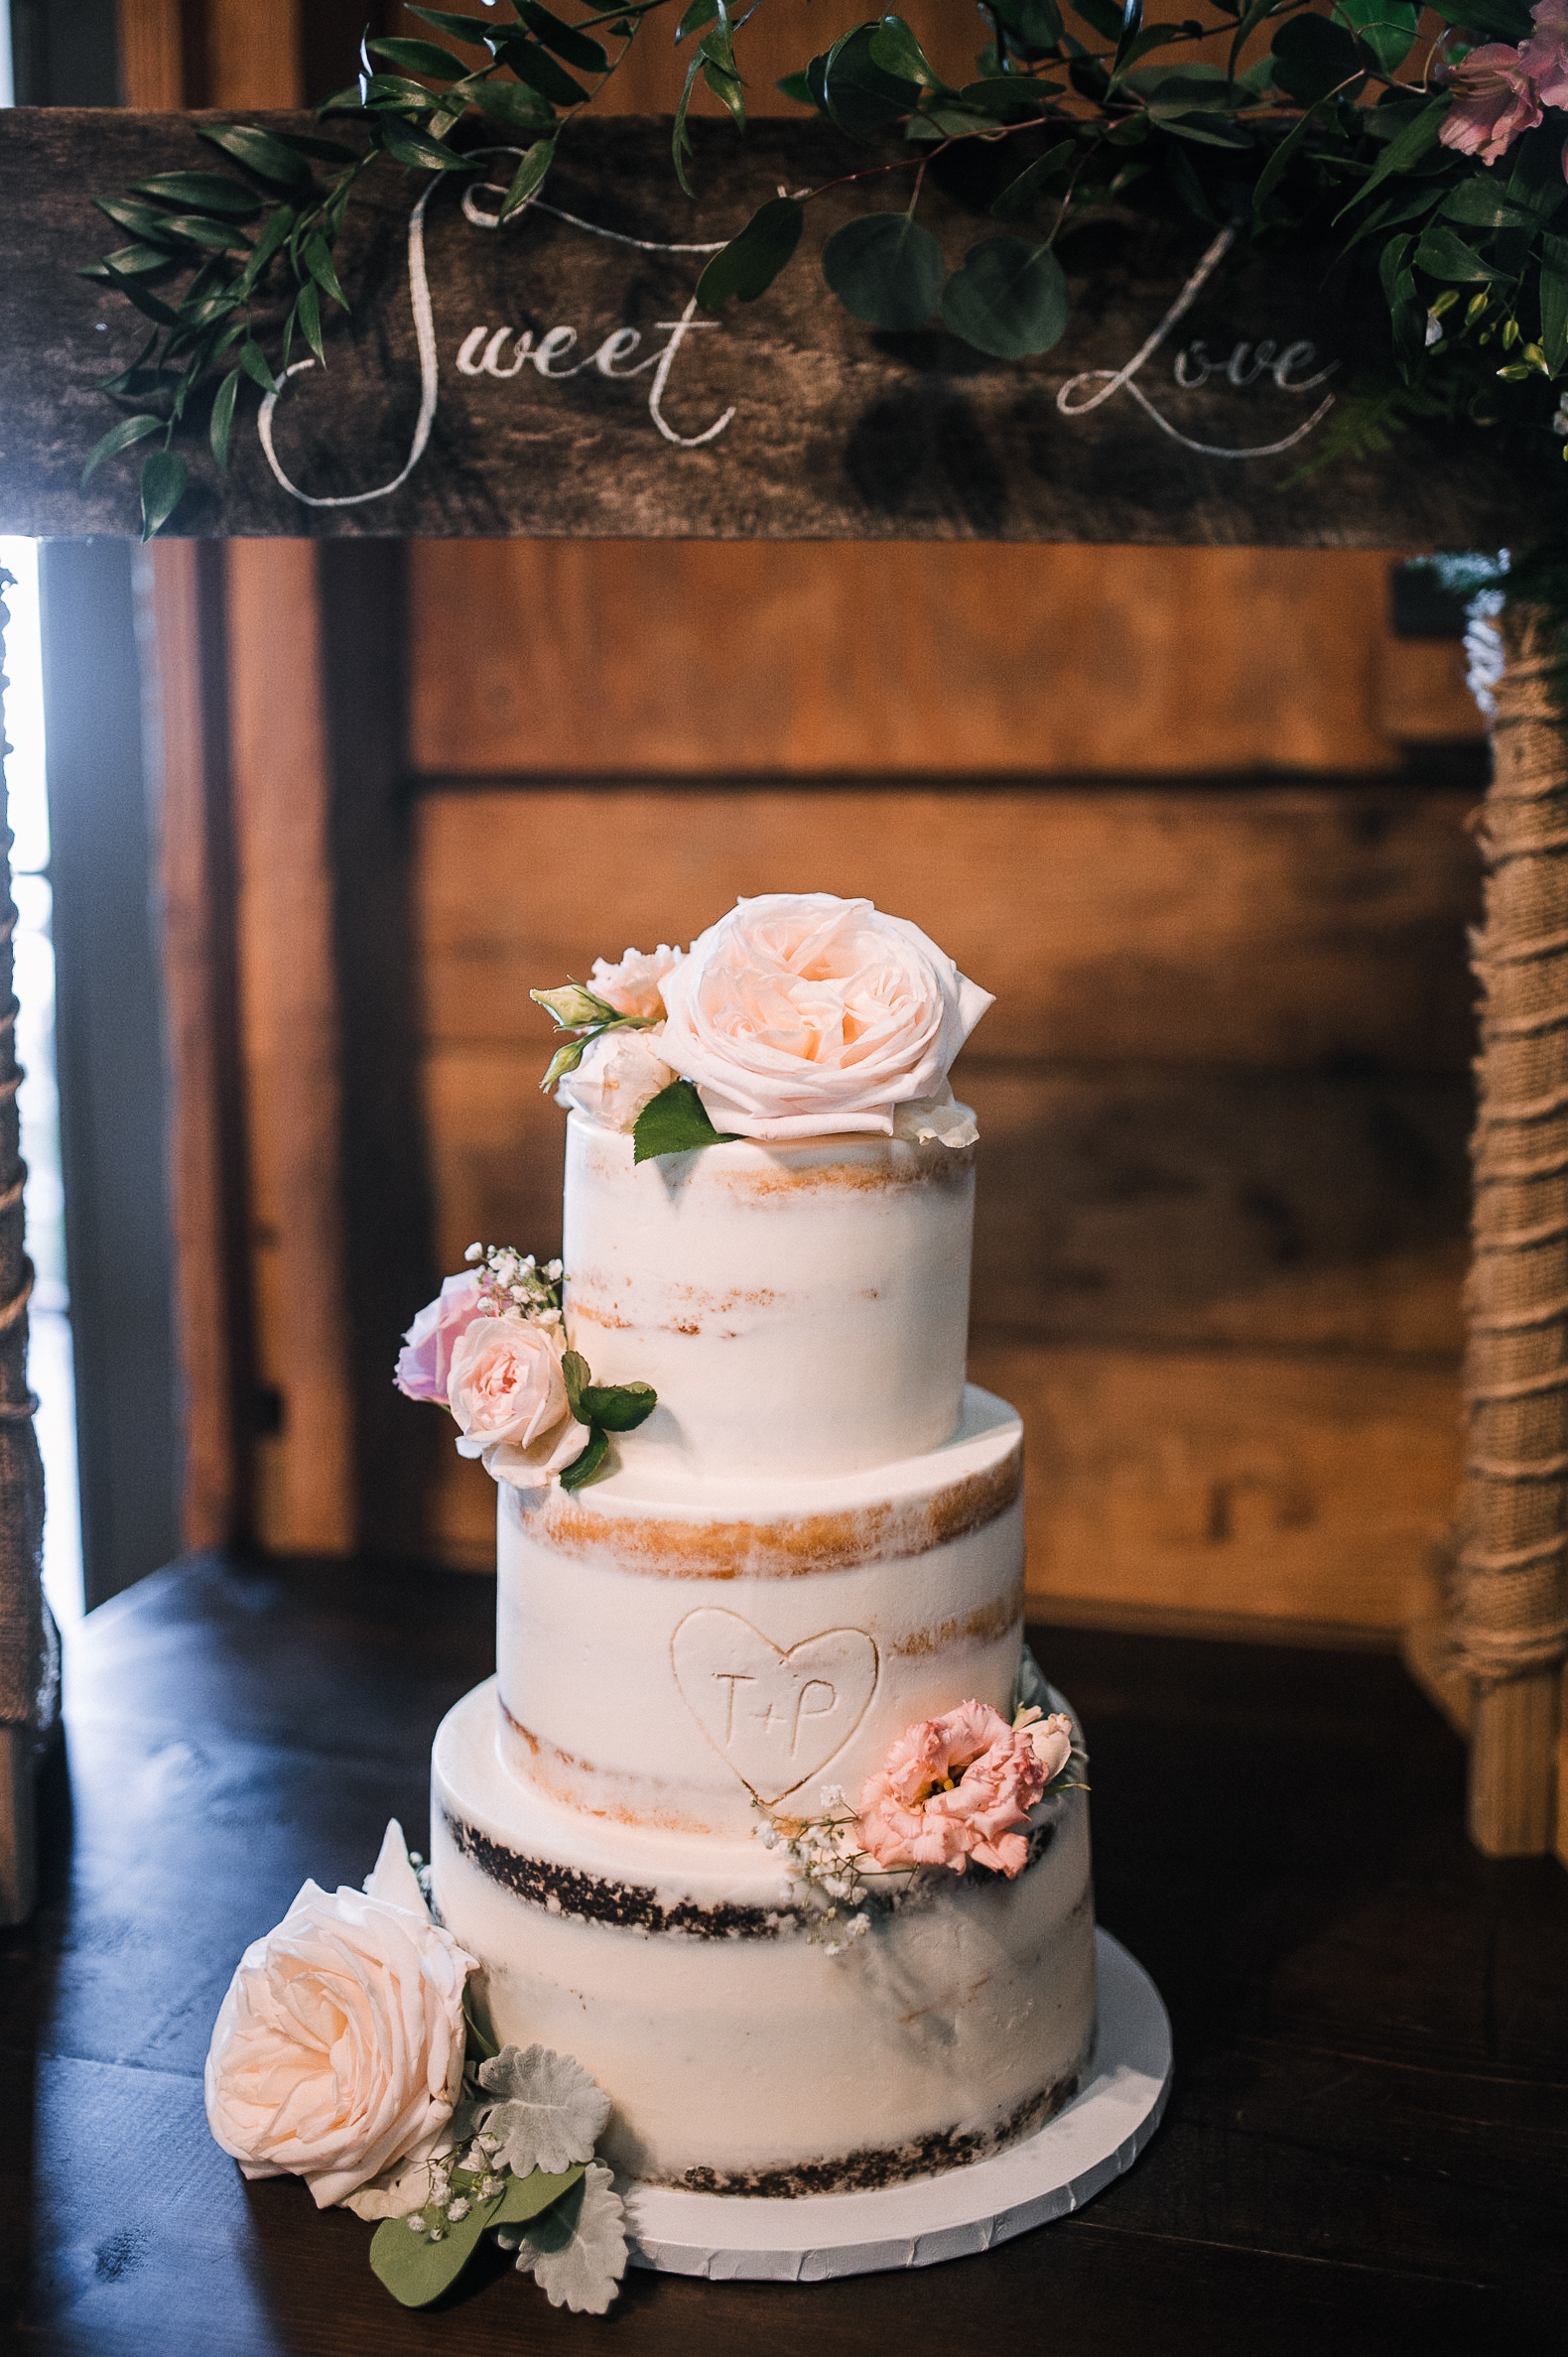 wedding cake detail shot at Bluemont Vineyard